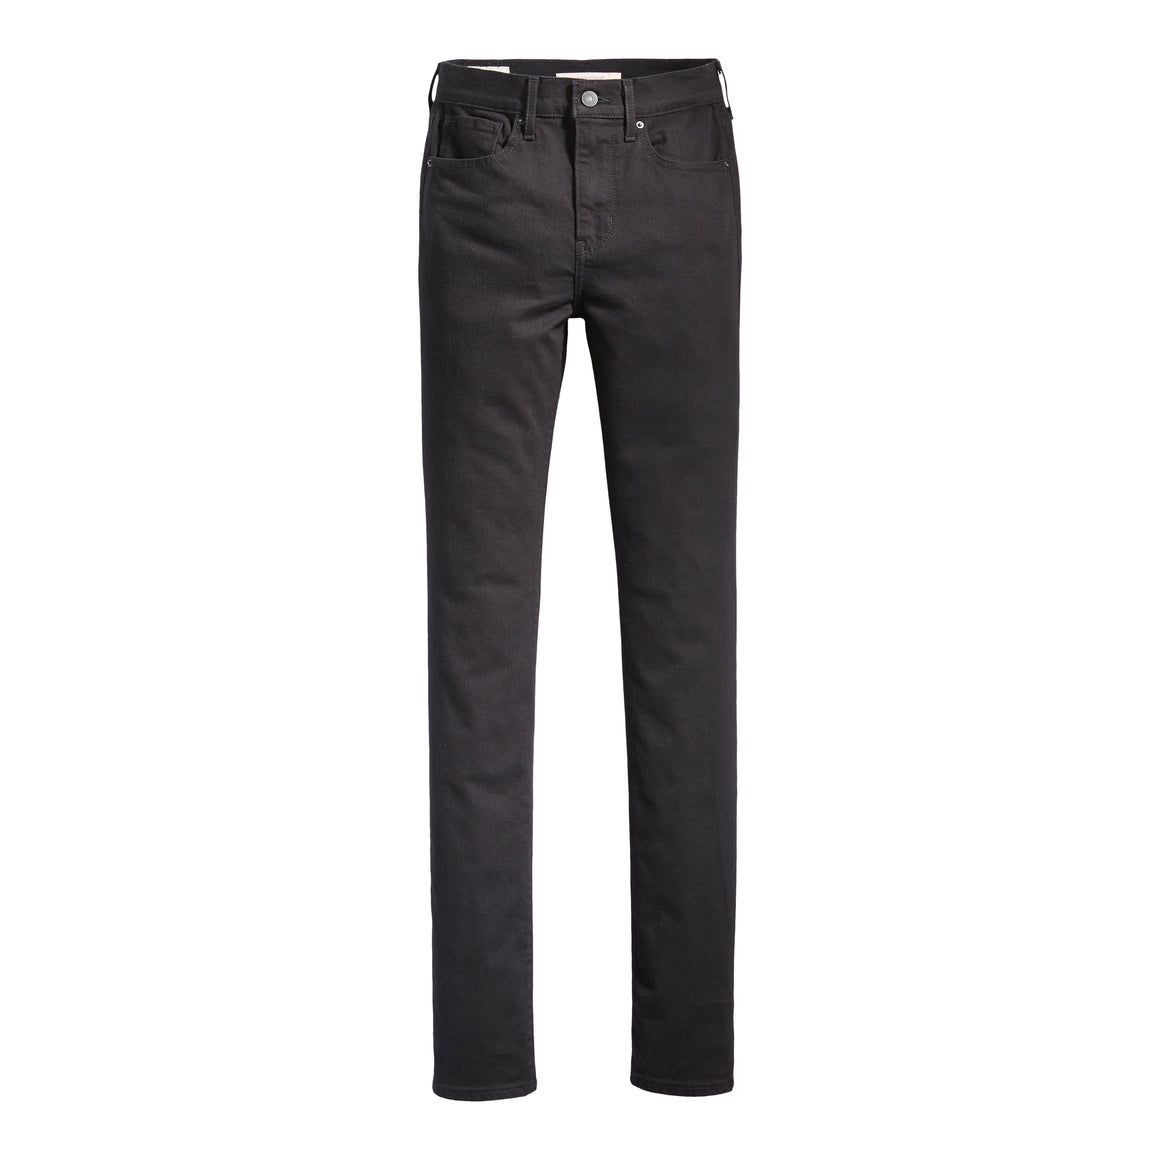 724 High-Waisted Straight Jeans for Women in Black Sheep